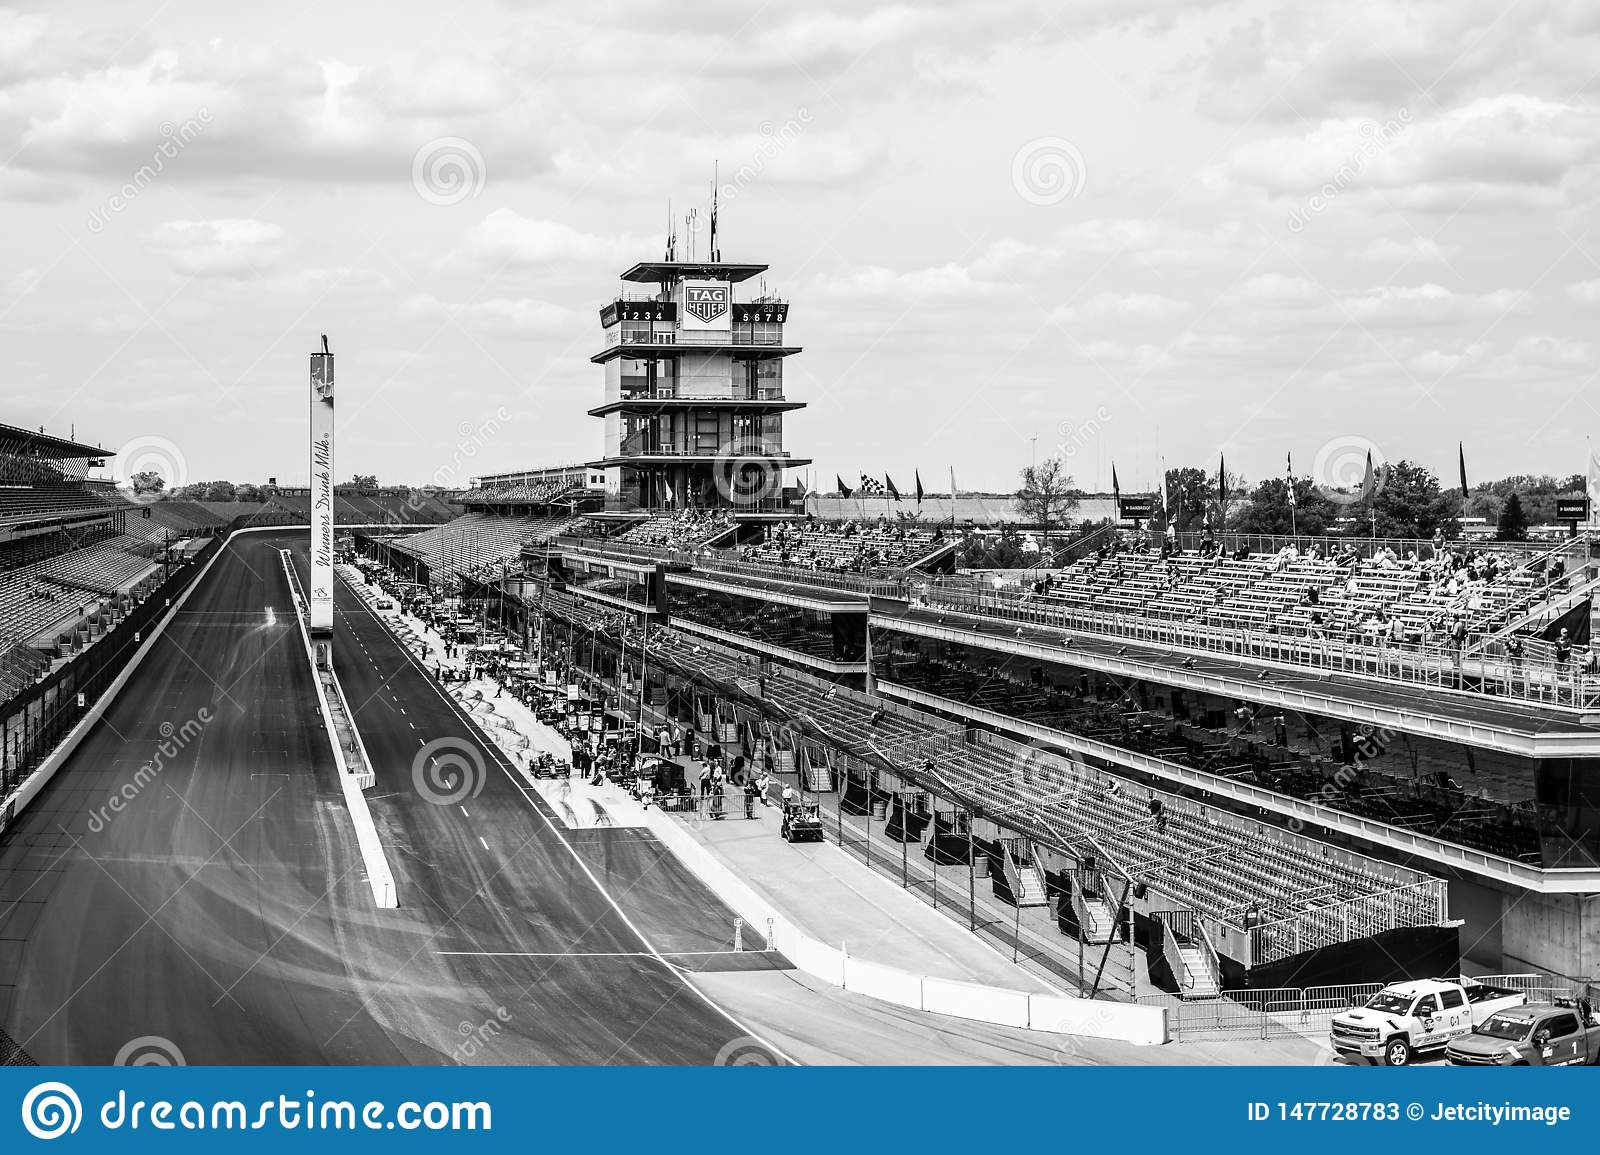 The Pagoda at Indianapolis Motor Speedway. IMS Prepares for the Indy 500 XVI